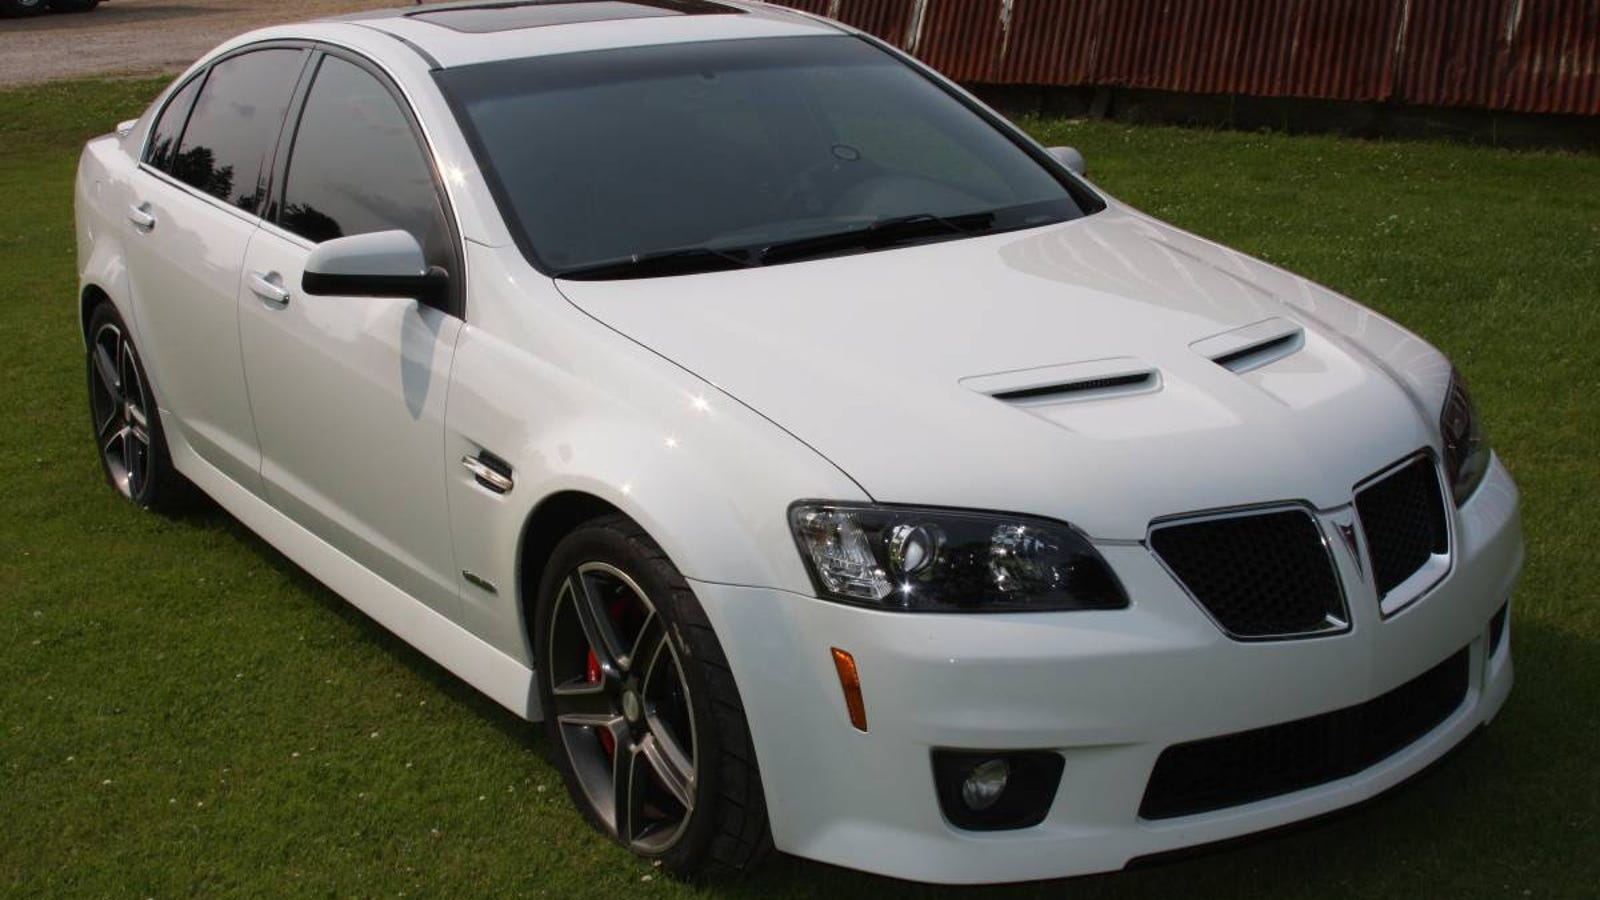 For $50,000, Could This 800WHP 2009 Pontiac G8 GXP Have You Saying G'Day  Mate?